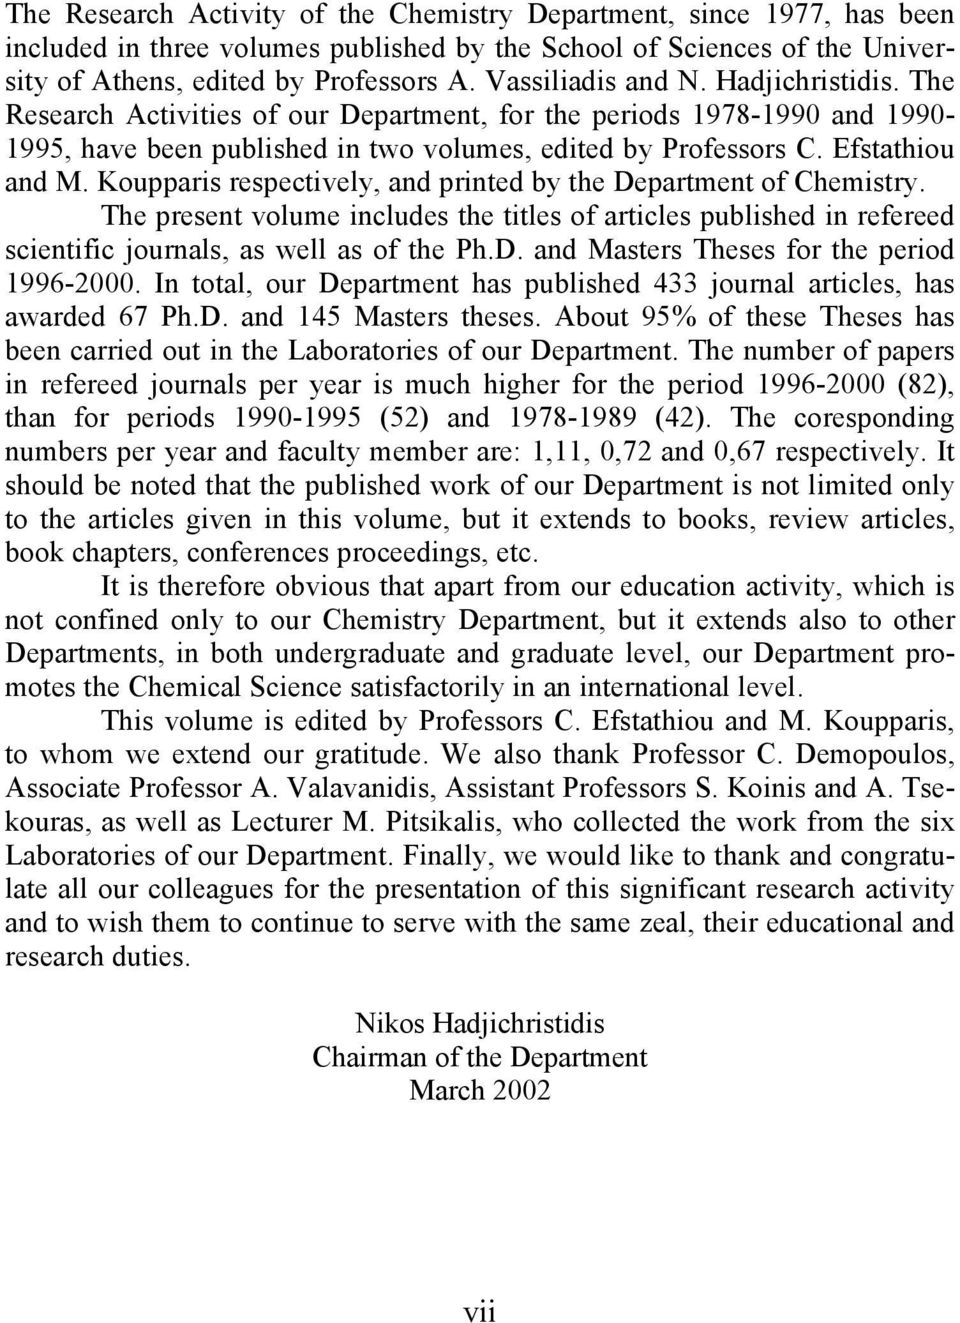 Koupparis respectively, and printed by the Department of Chemistry. The present volume includes the titles of articles published in refereed scientific journals, as well as of the Ph.D. and Masters Theses for the period 1996-2000.